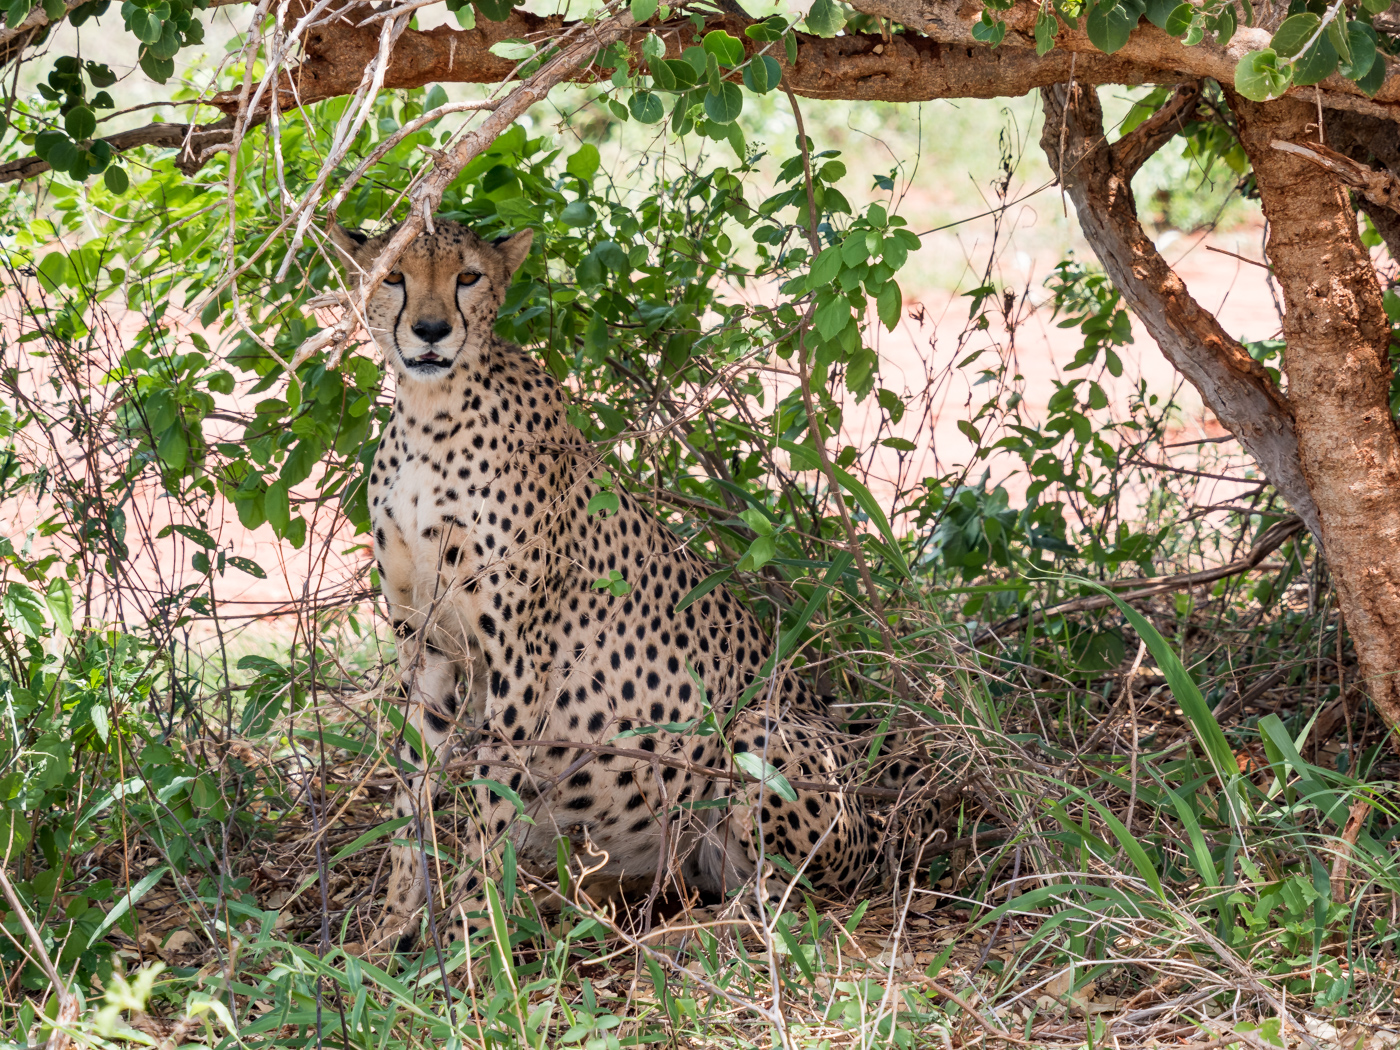 Safari Kenia Ngutuni Sanctuary National Park cheeta